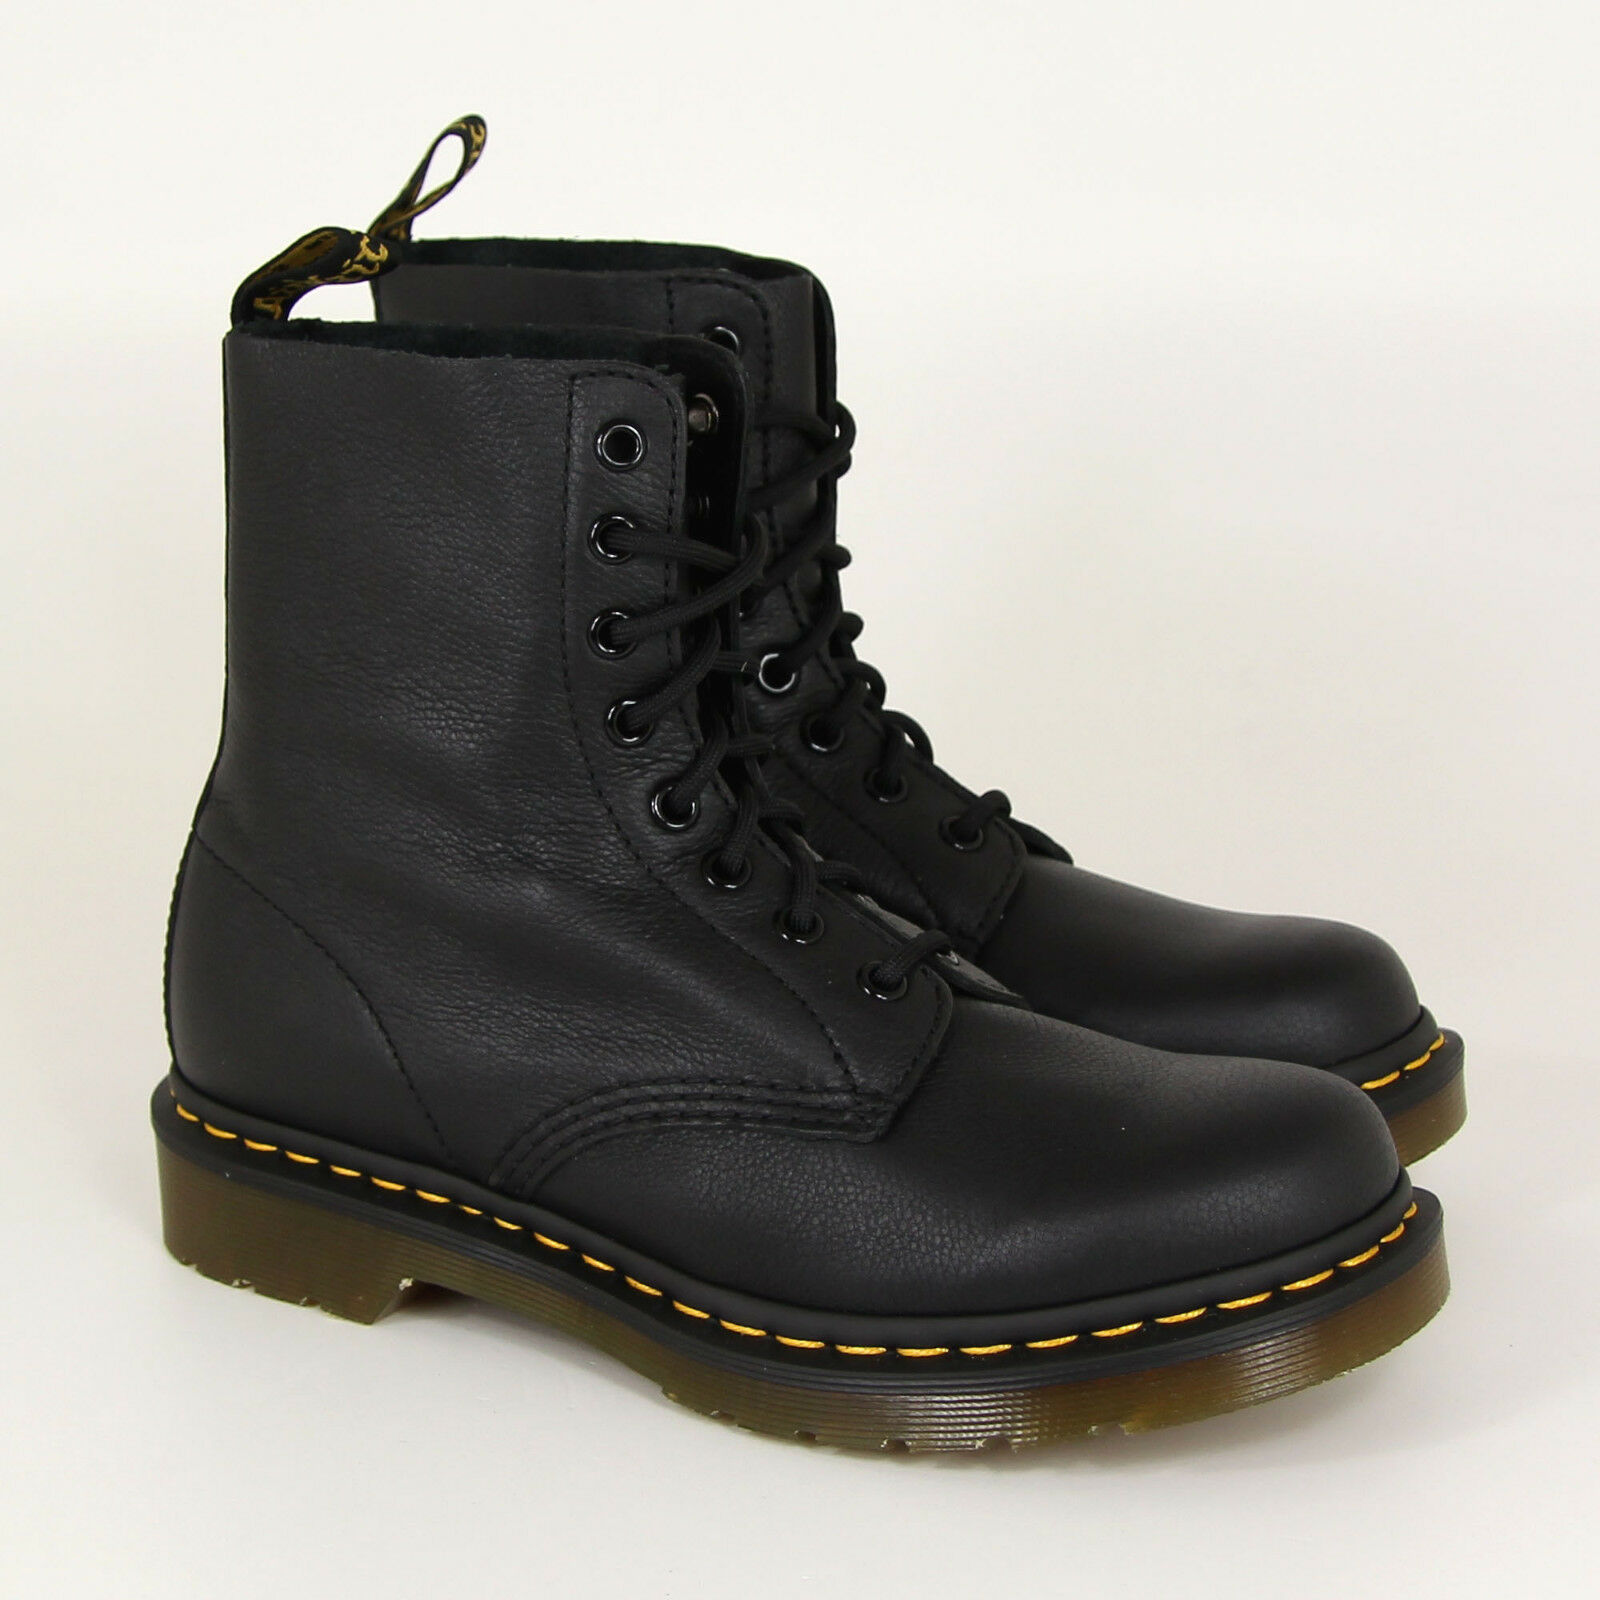 Dr.Martens Pascal, Black, Virginia, 13512006, 8-Loch, Leather, Air Wair, New